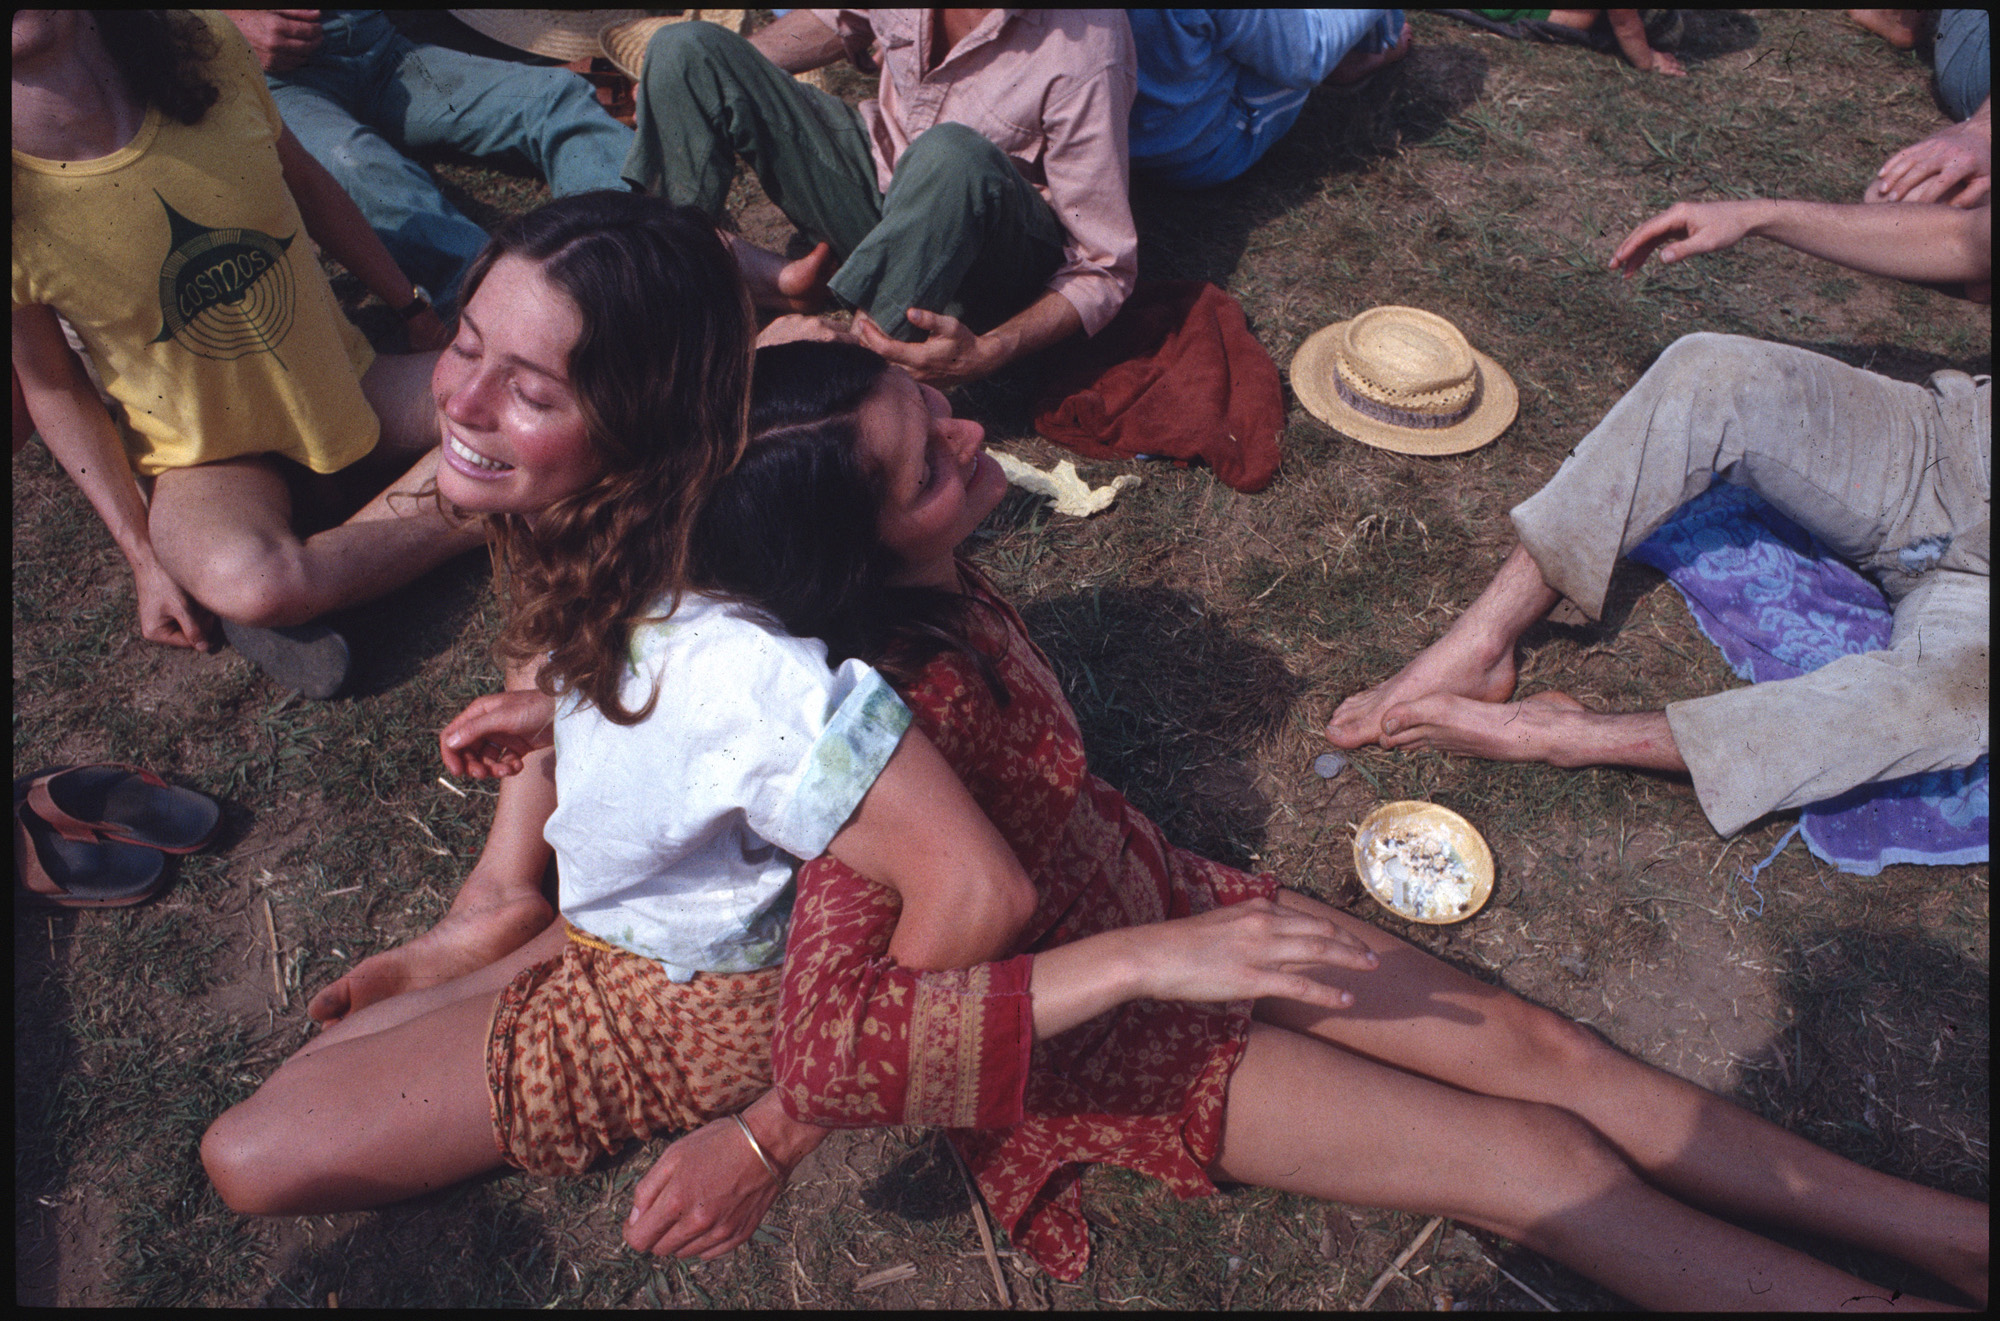 Two women embracing at a festival